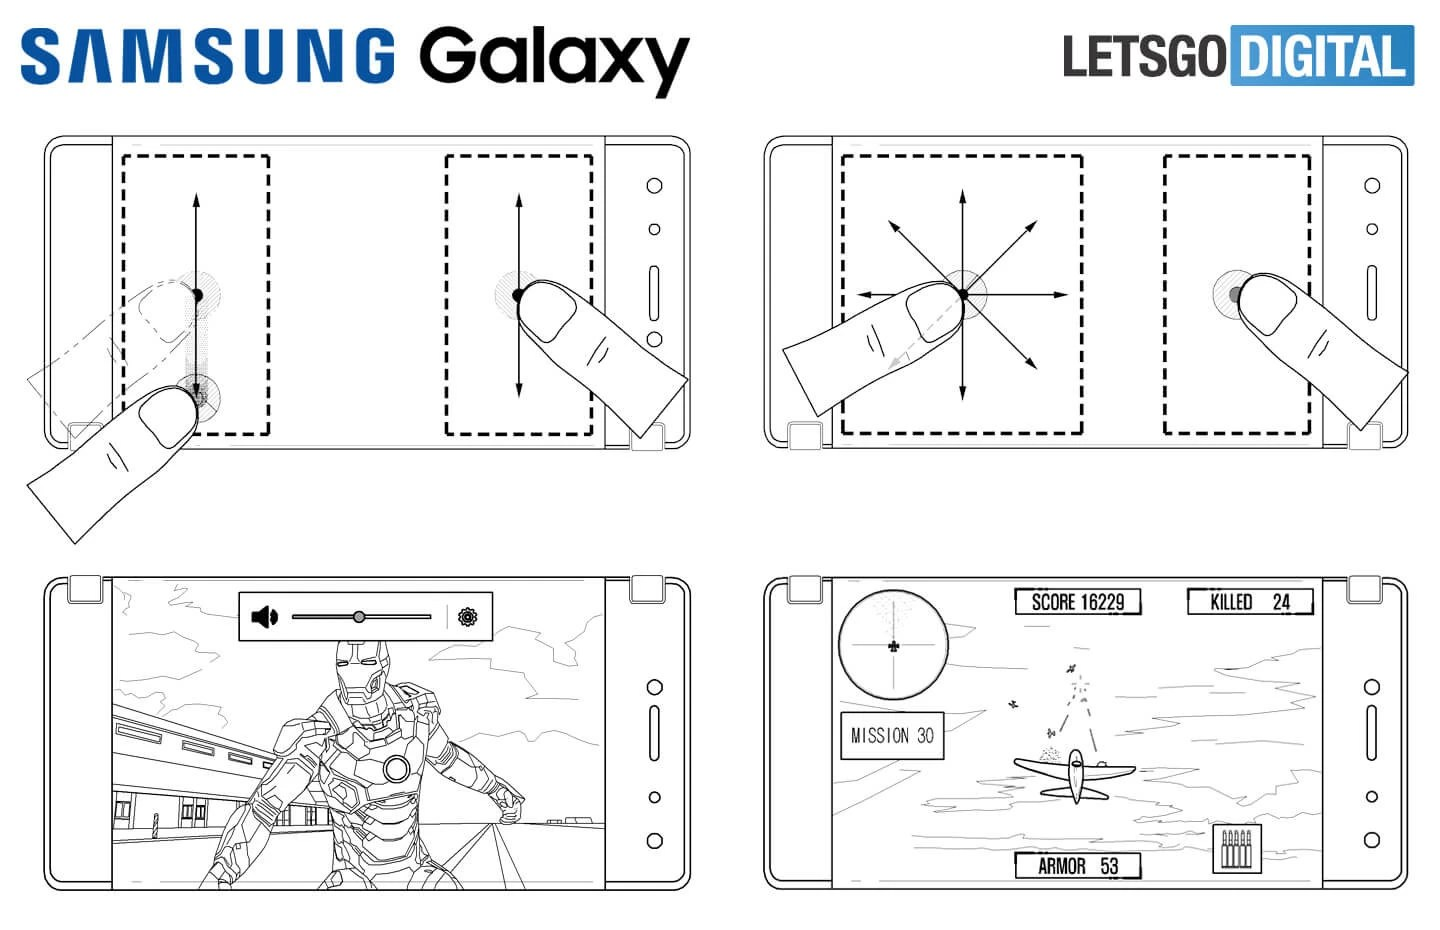 Samsung S New Patent Shows Foldable Smartphone Reminiscent